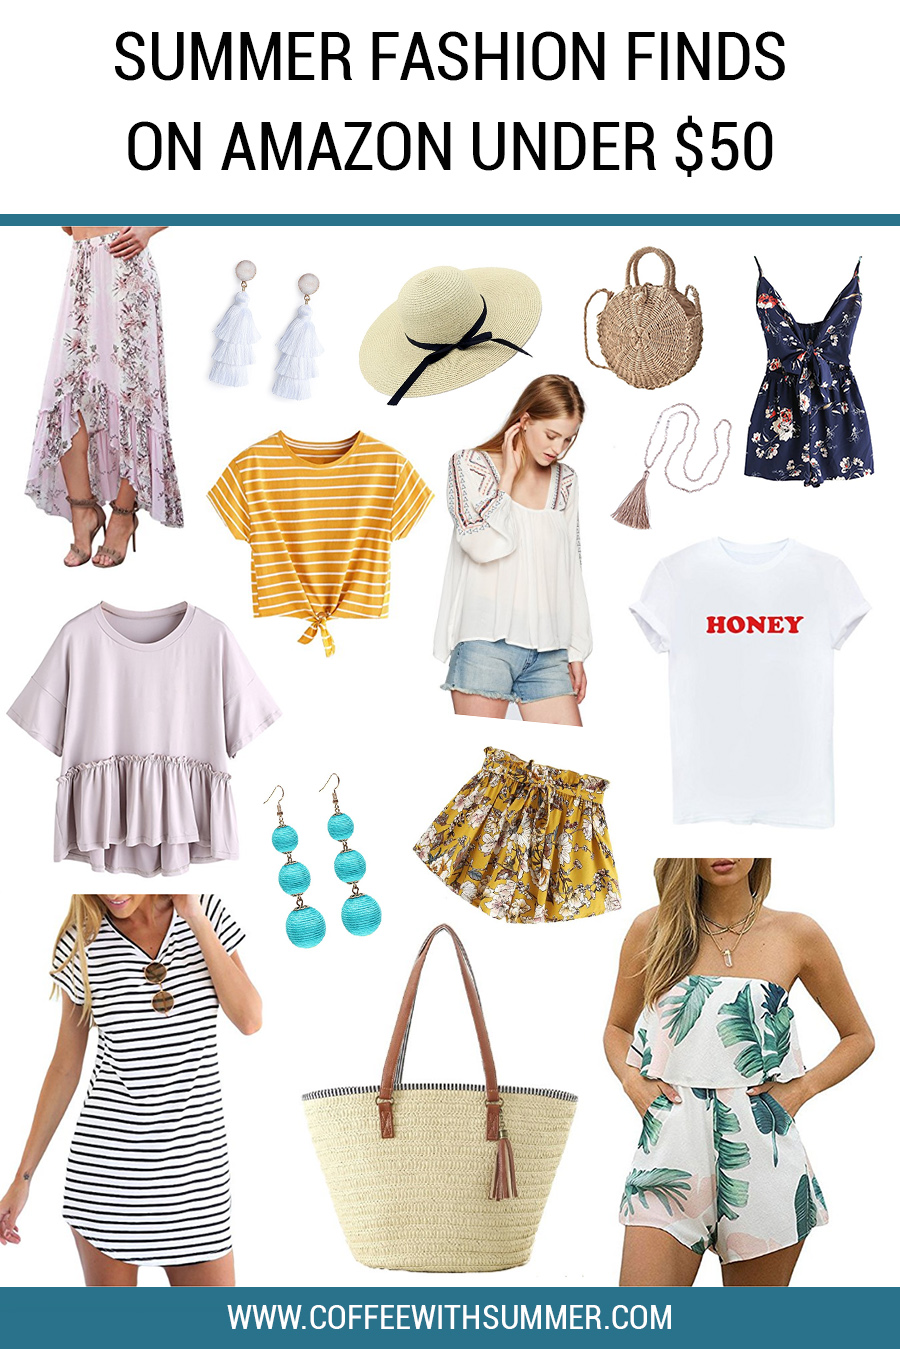 Summer Fashion on Amazon Under $50 | Amazon Fashion | Summer Style | Summer Fashion